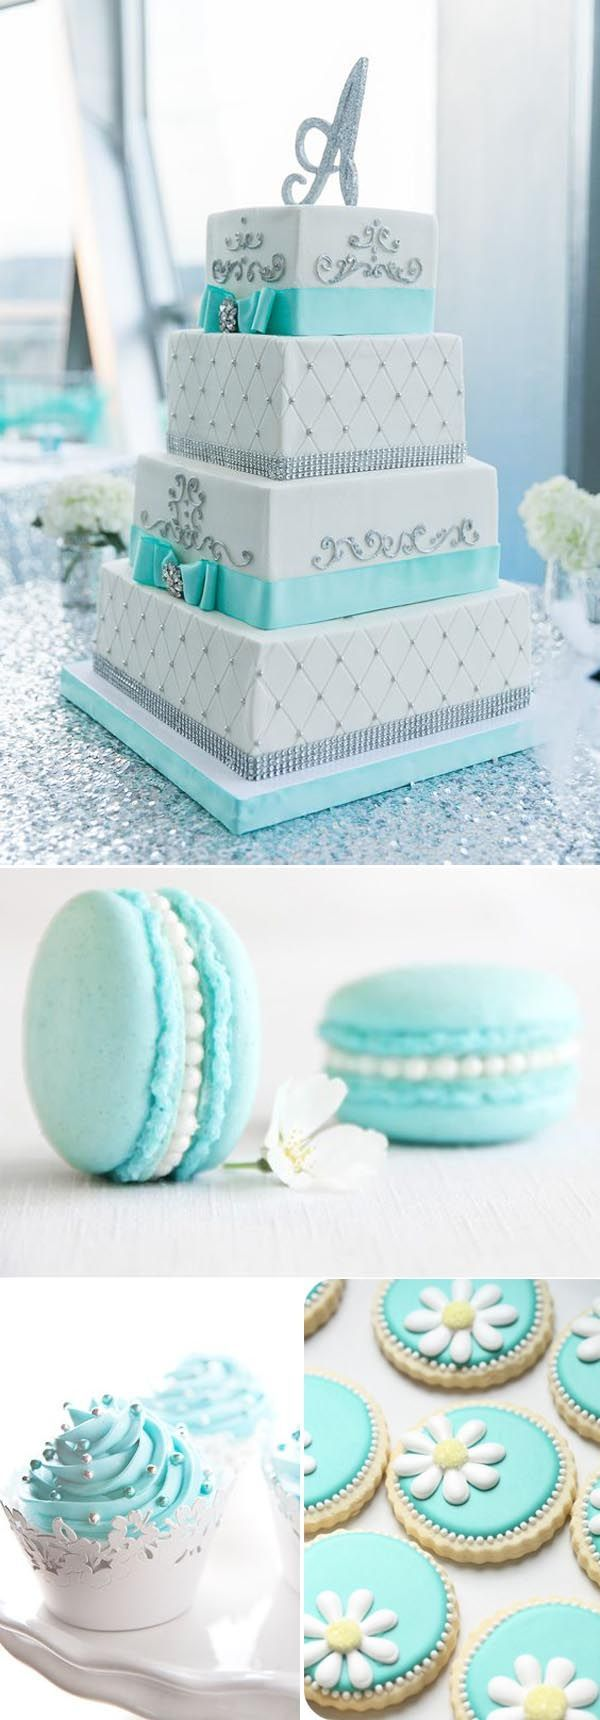 best 10+ tiffany blue color ideas on pinterest | tiffany blue